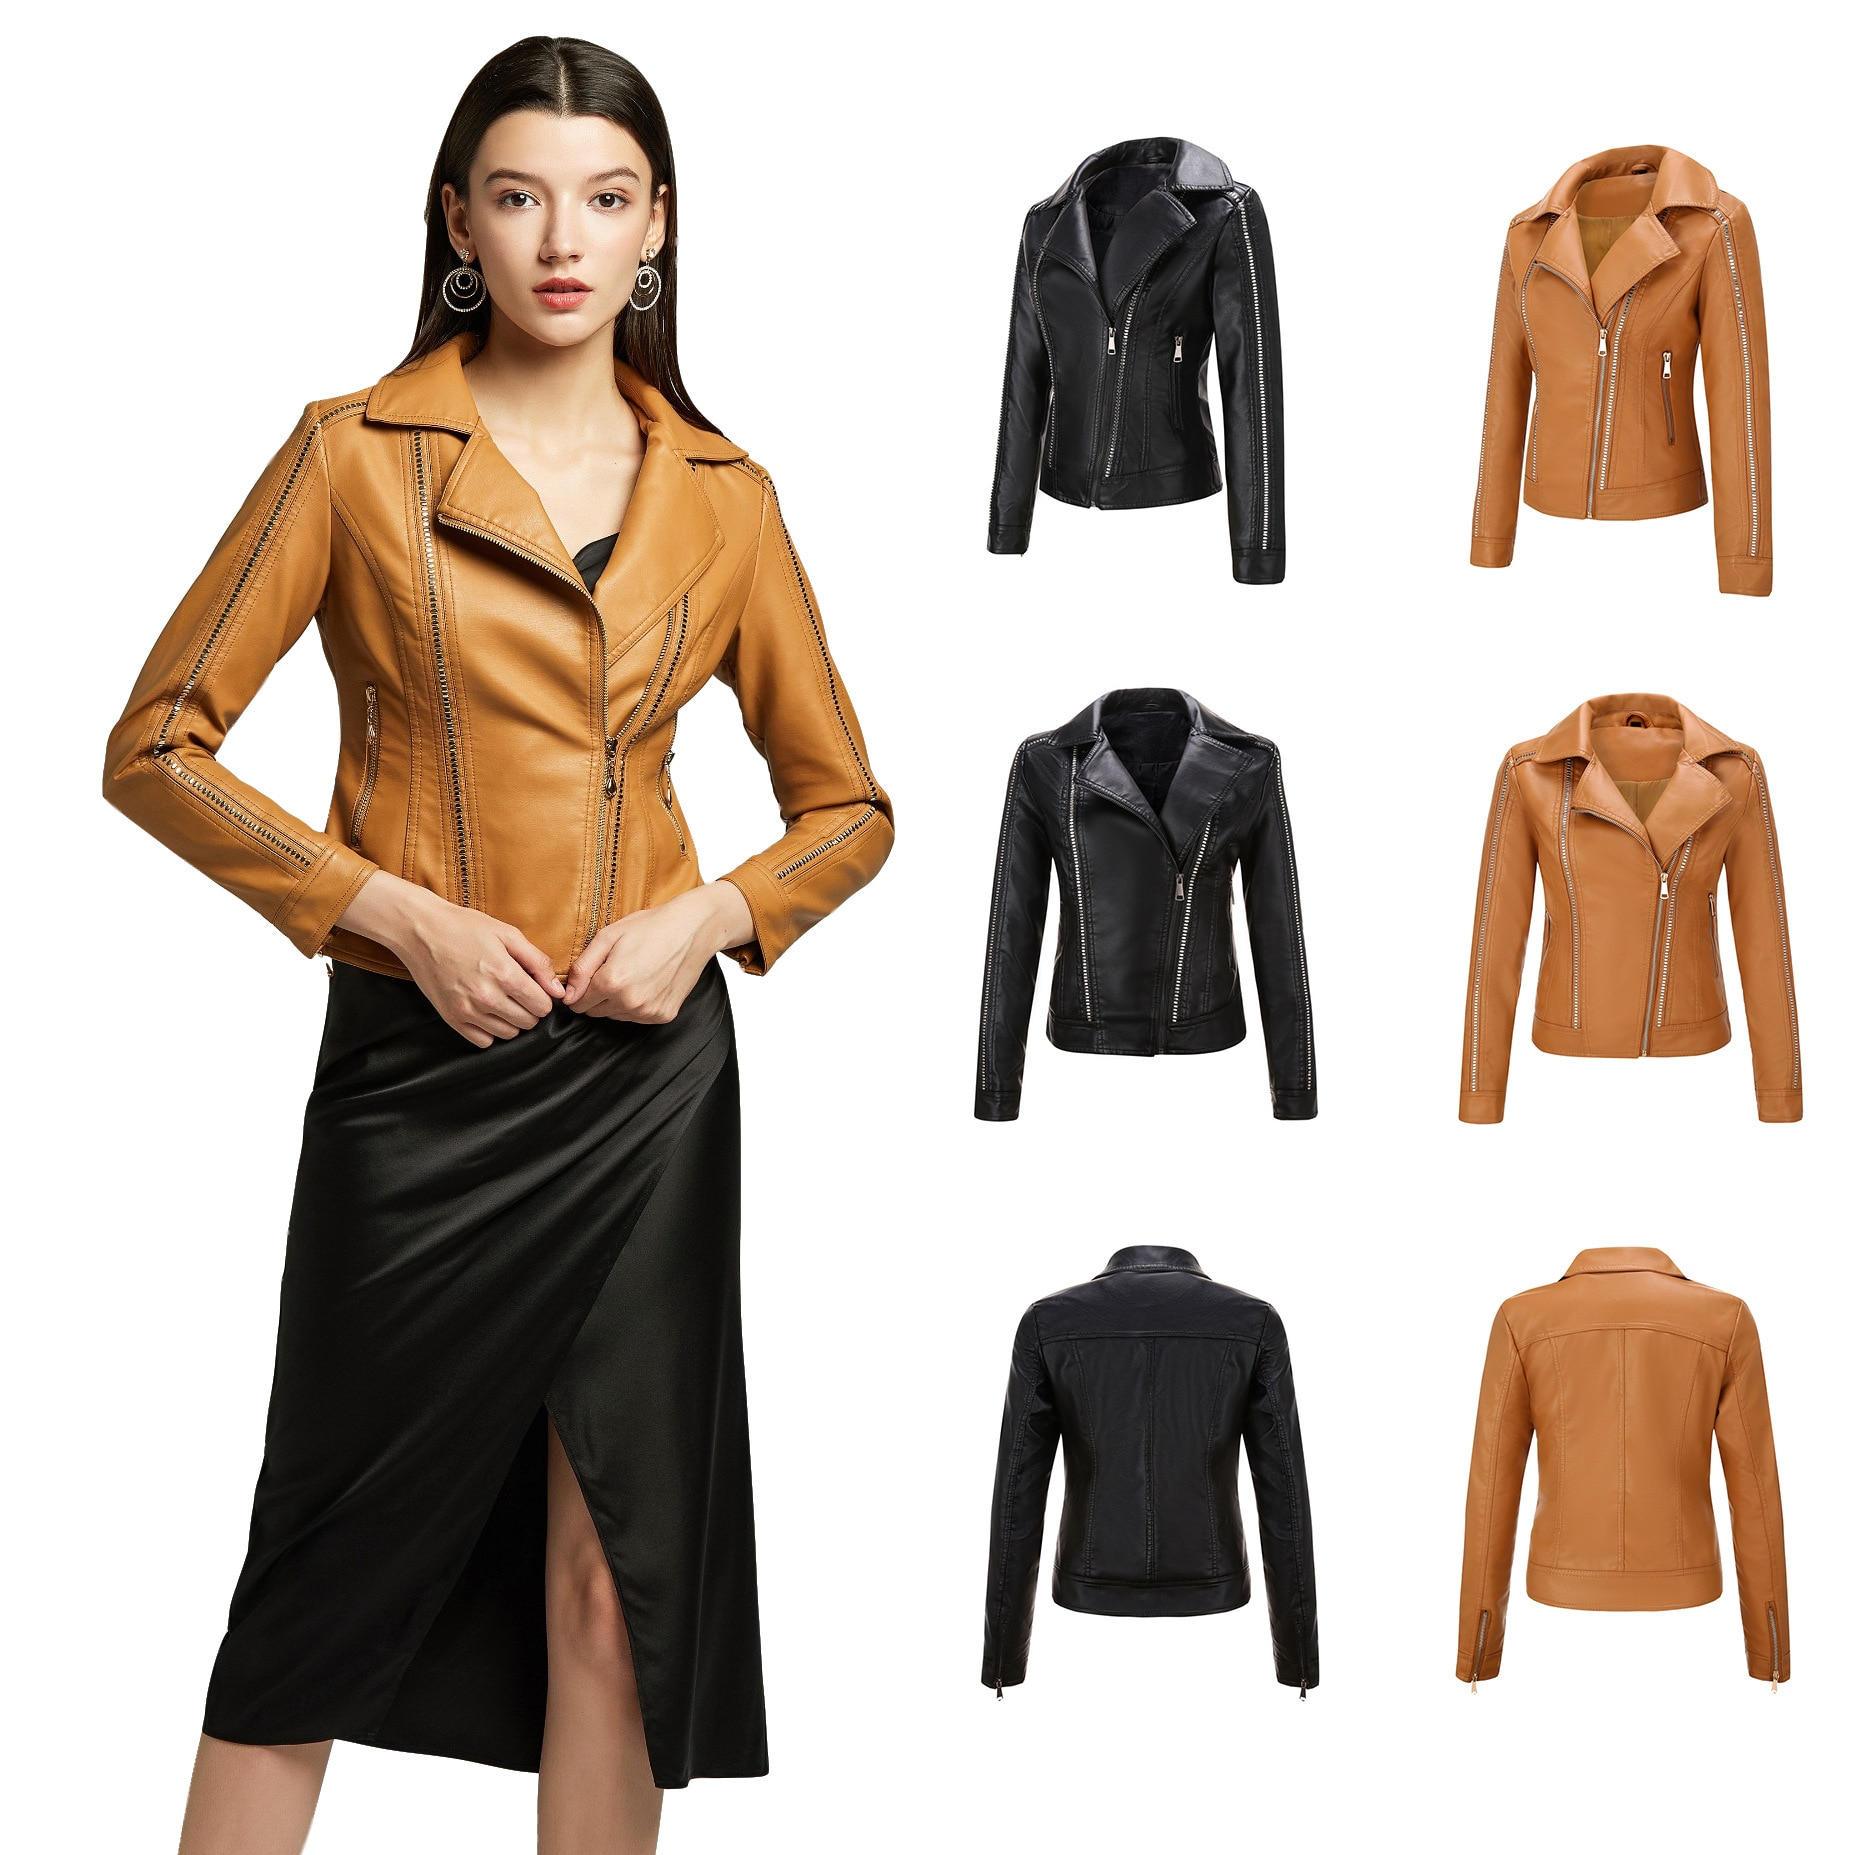 Women's jacket women's leather jacket rivet trend inclined zipper V-neck women's leather jacket explosions leather jacket